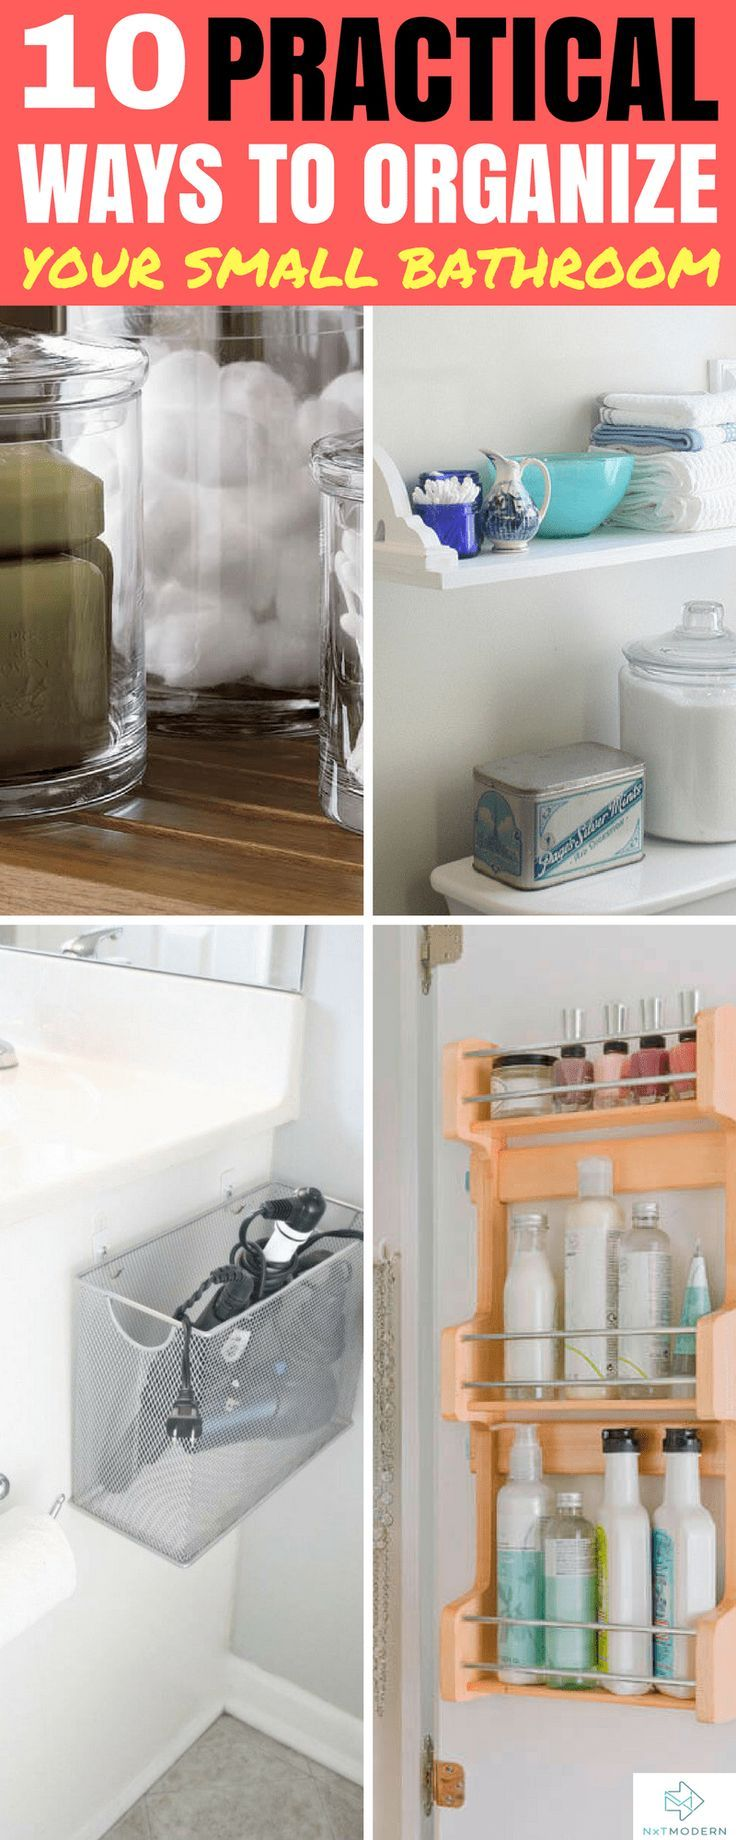 awesome u cheap ideas to organize your small bathroom small